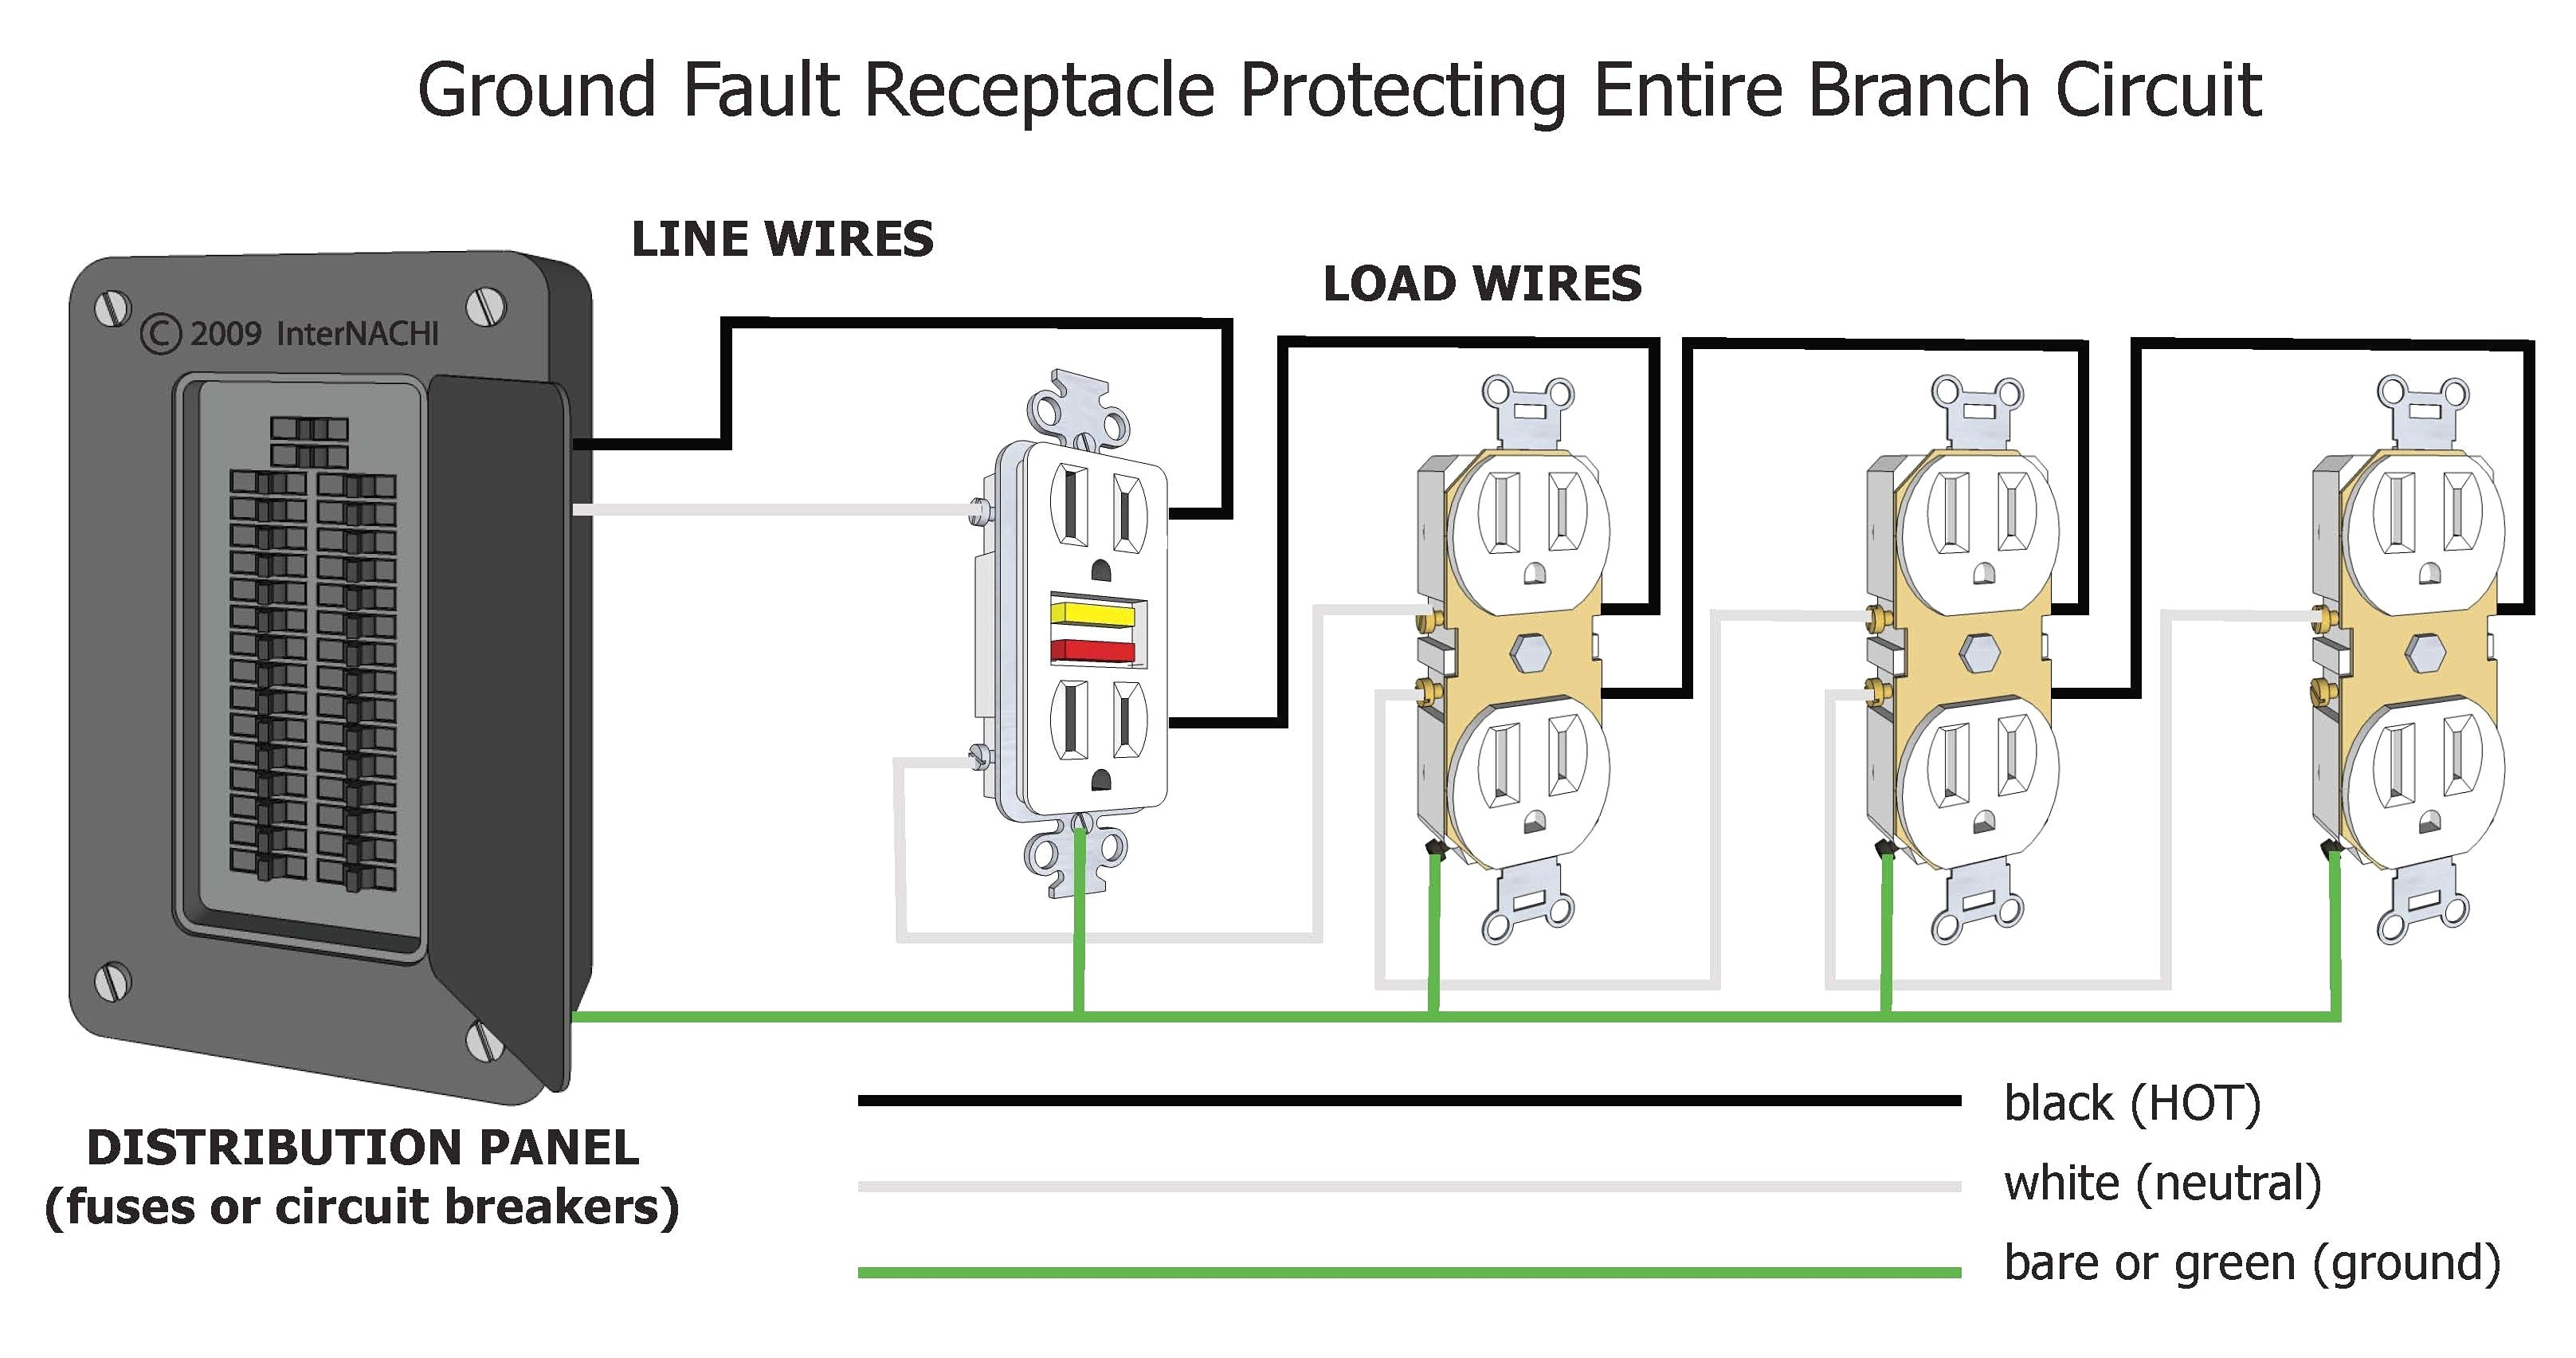 Circuit Breaker Wiring Diagram from wholefoodsonabudget.com